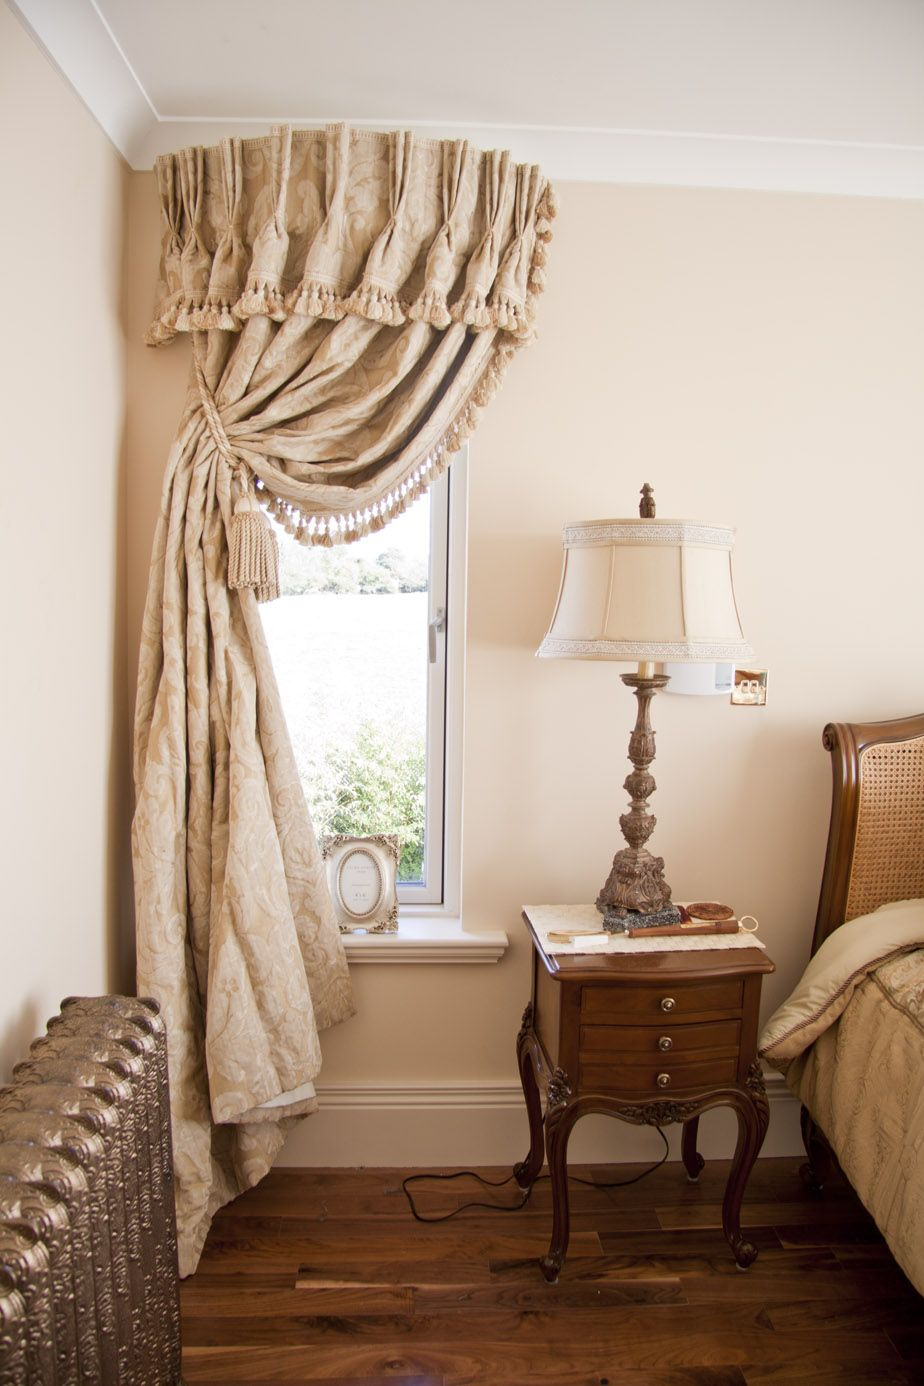 Window Curtain Design Ideas: Use Curved Cornice Above Dining Room Drapes. This